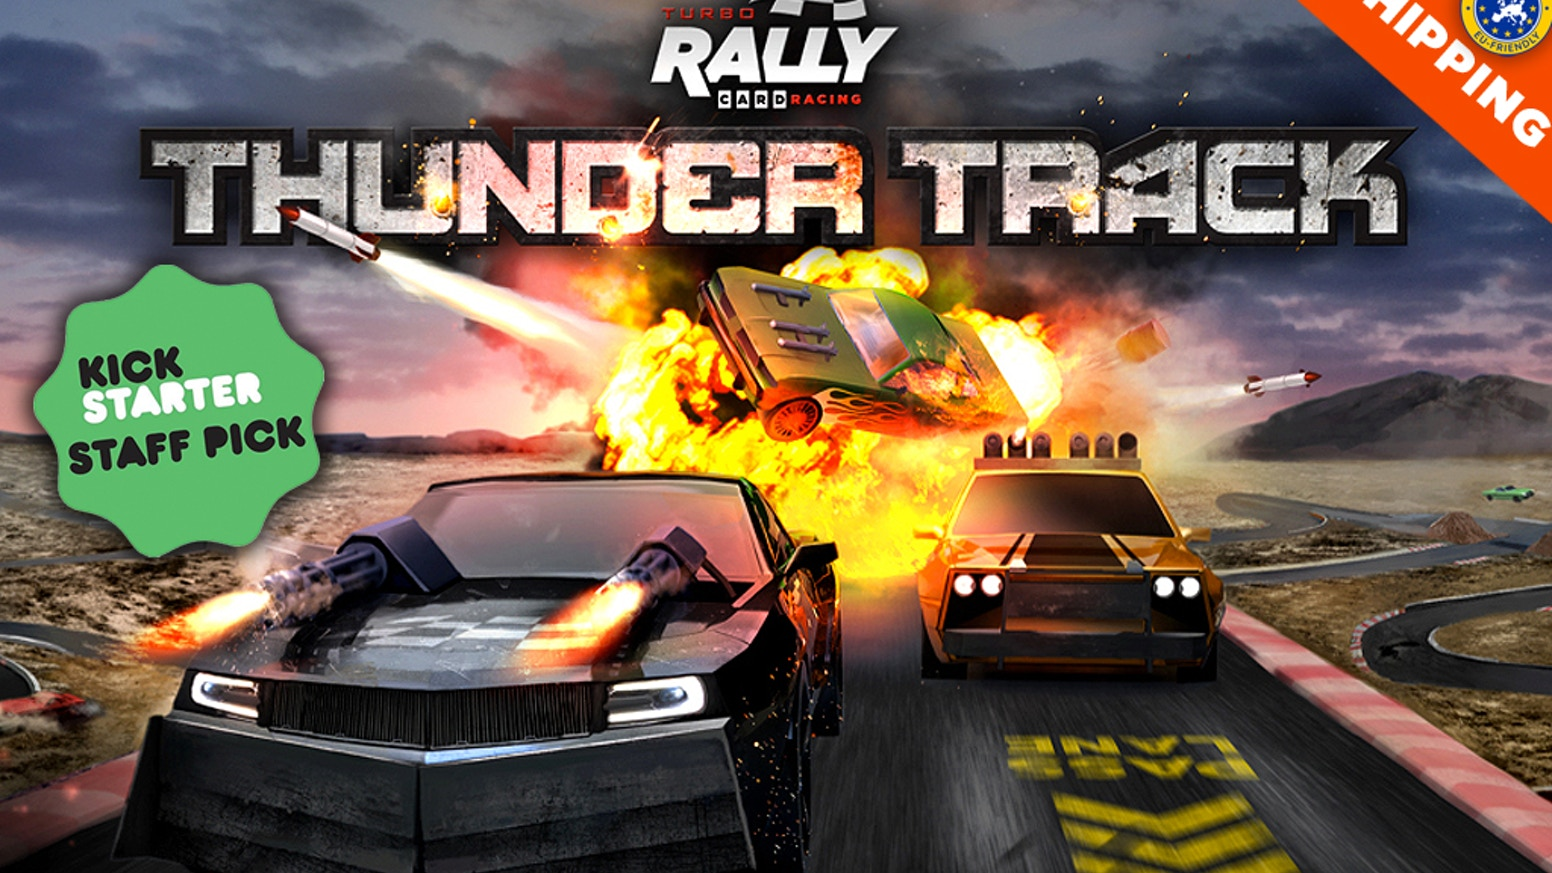 V-8 meets C-4 in this supercharged and explosive new sequel to the popular Turbo Rally Card Racing. NOW WITH LOWER SHIPPING!